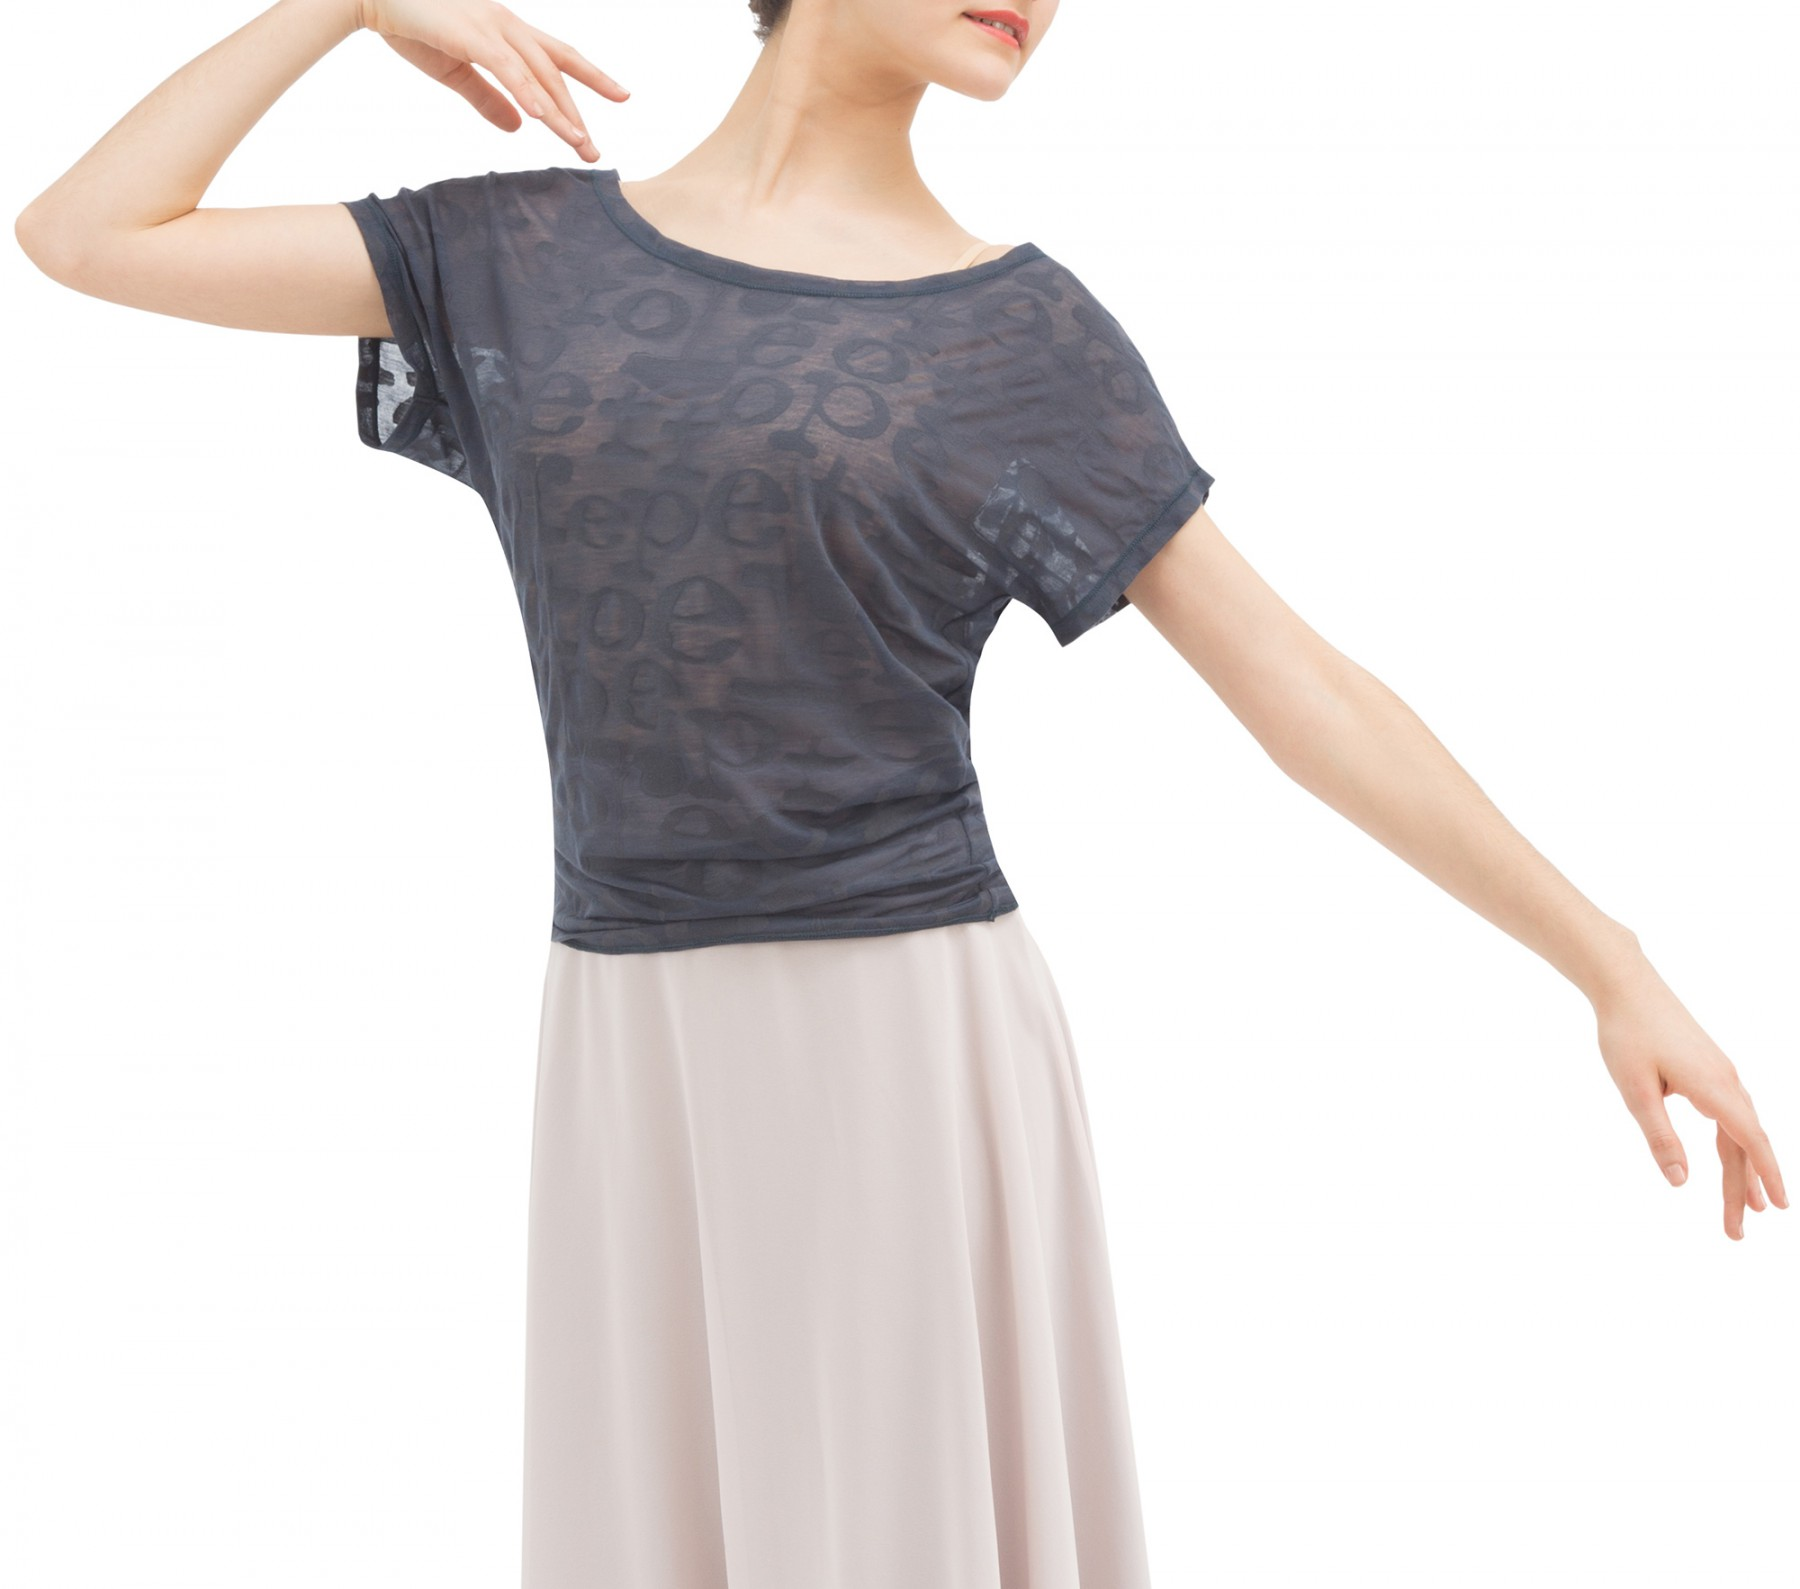 T-shirt transparence Repetto